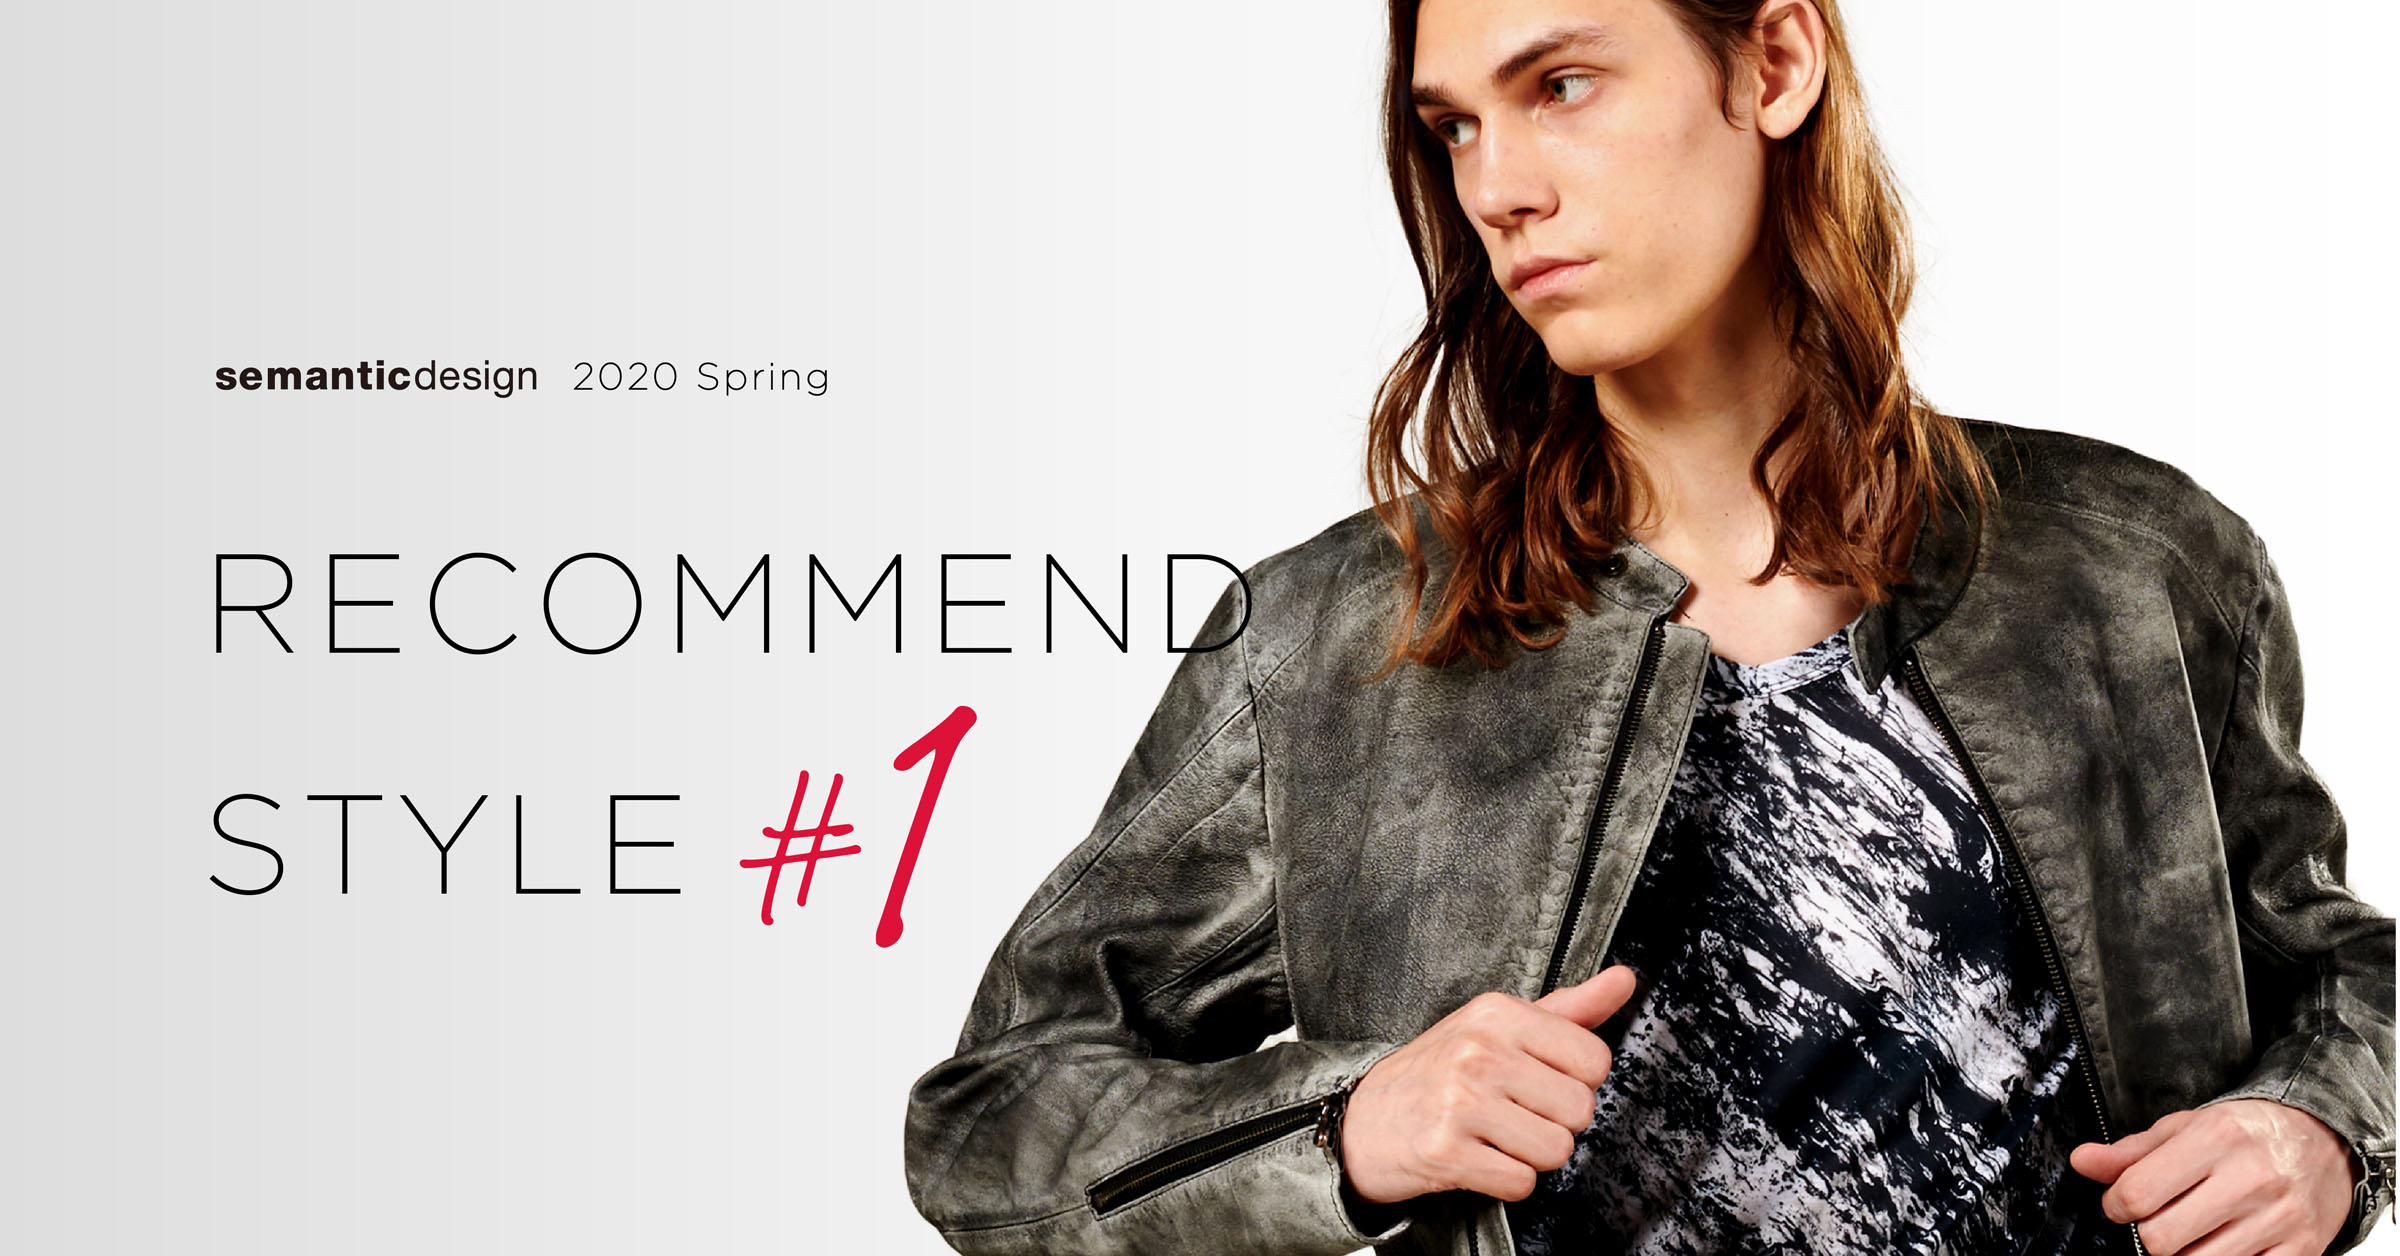 2020 Spring RECOMMEND STYLE